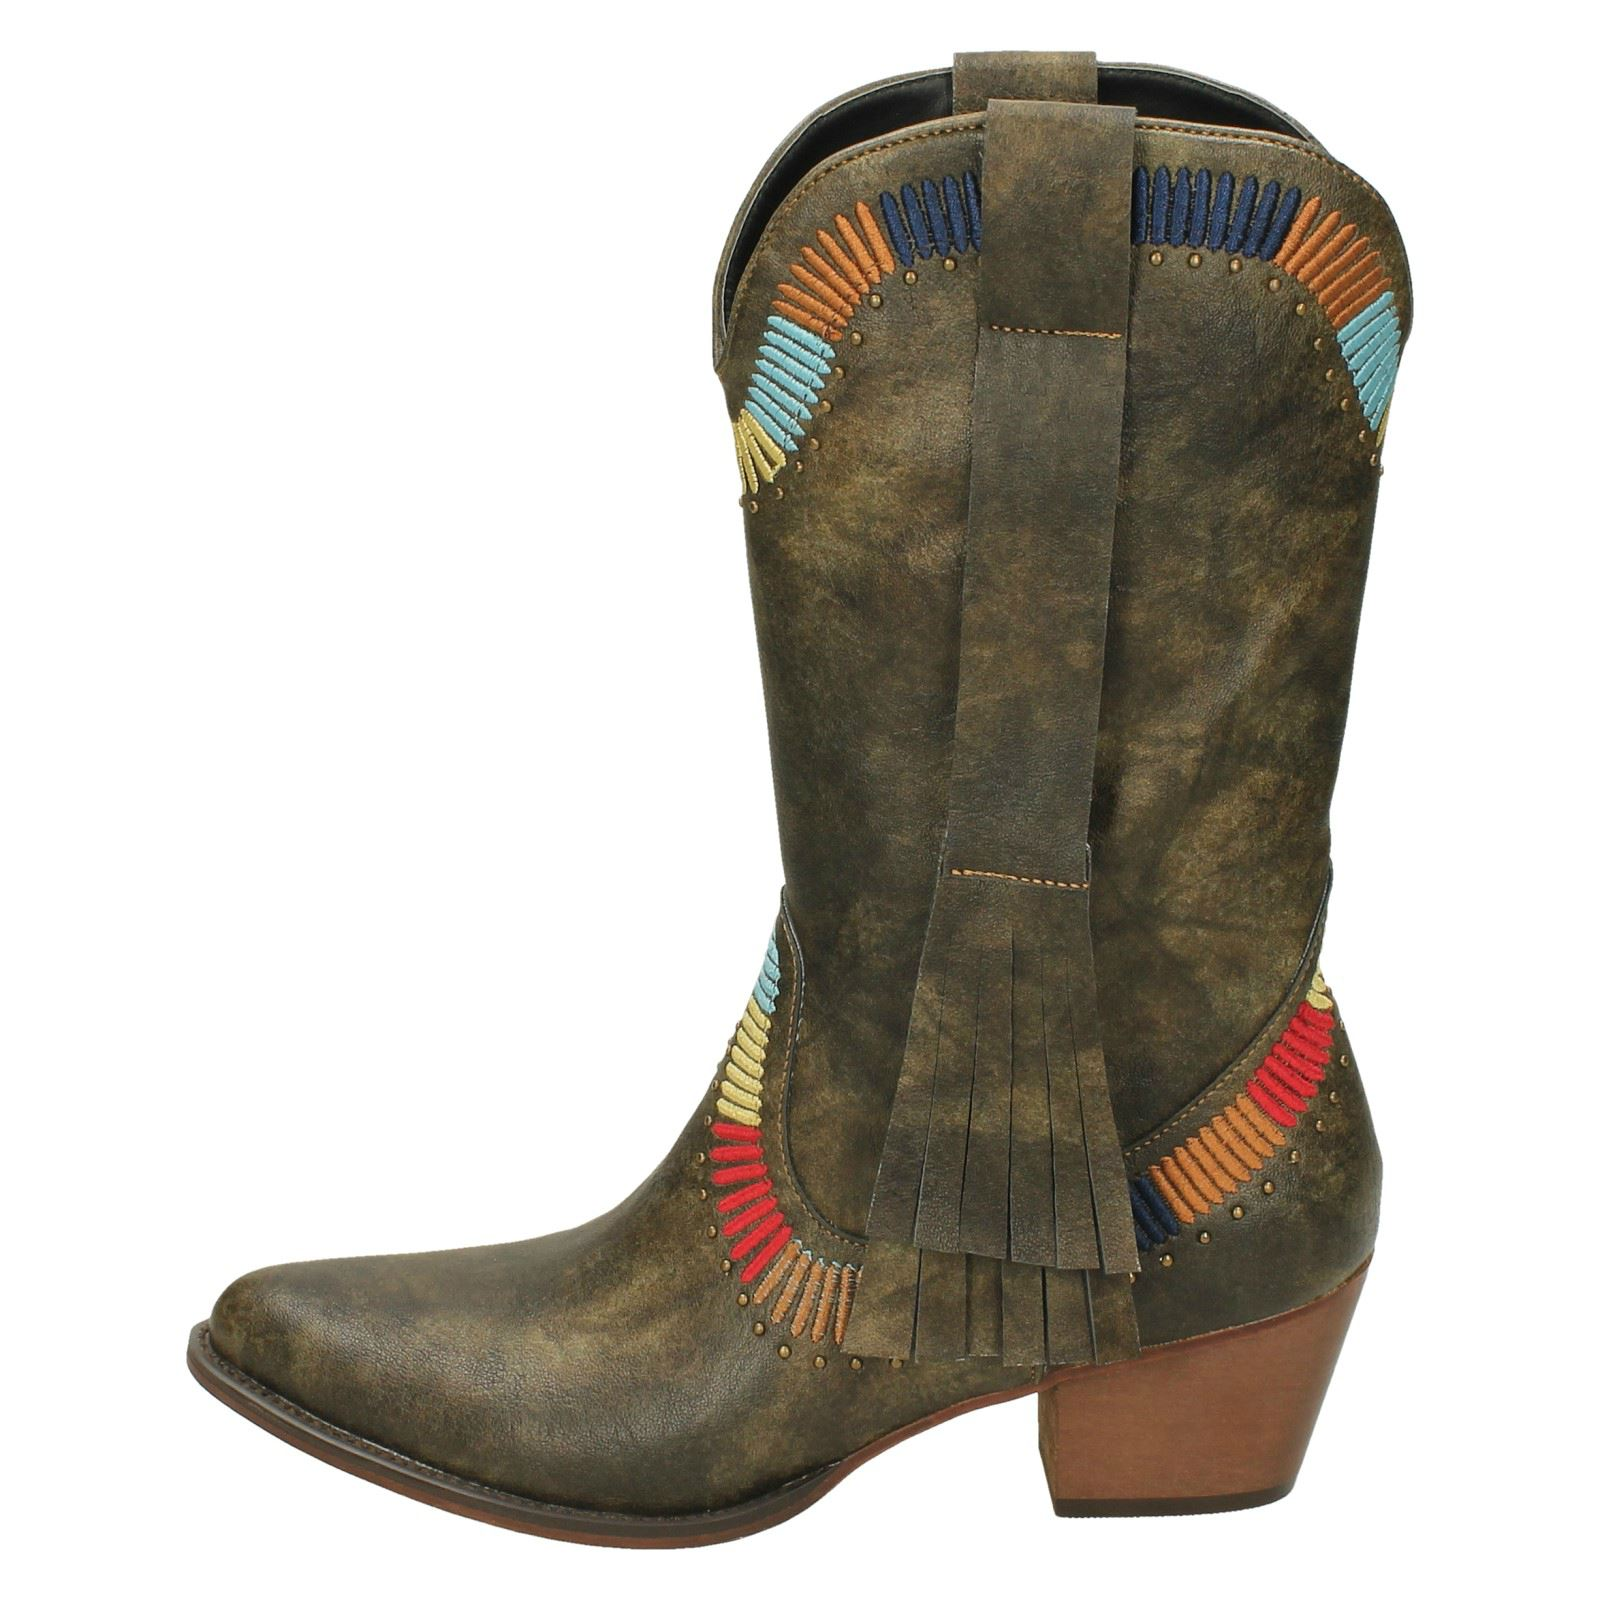 Ladies 'Down To Earth' Earth' Earth' Cowboy Style Boots 86bf94